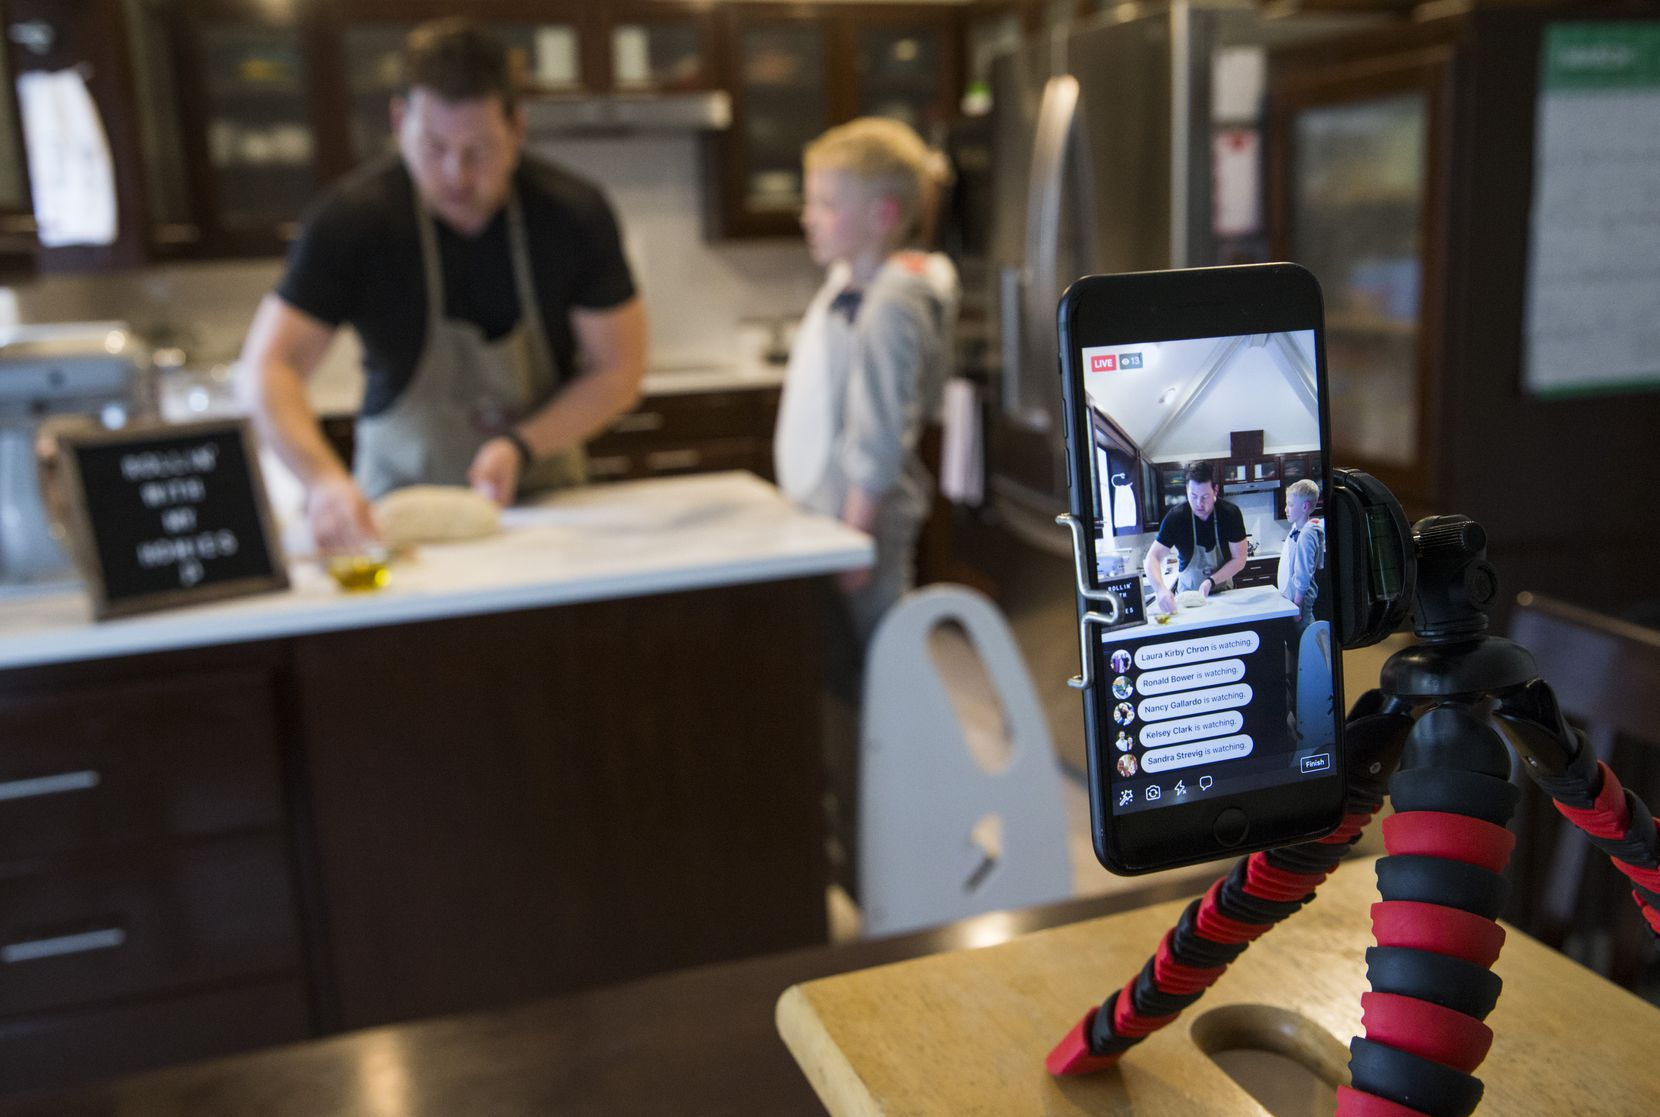 Chef Joe Baker of Joe the Baker and his son, Blais Baker, 5, who is dressed as a shark, host an online baking tutorial using Facebook Live from their kitchen in Coppell.